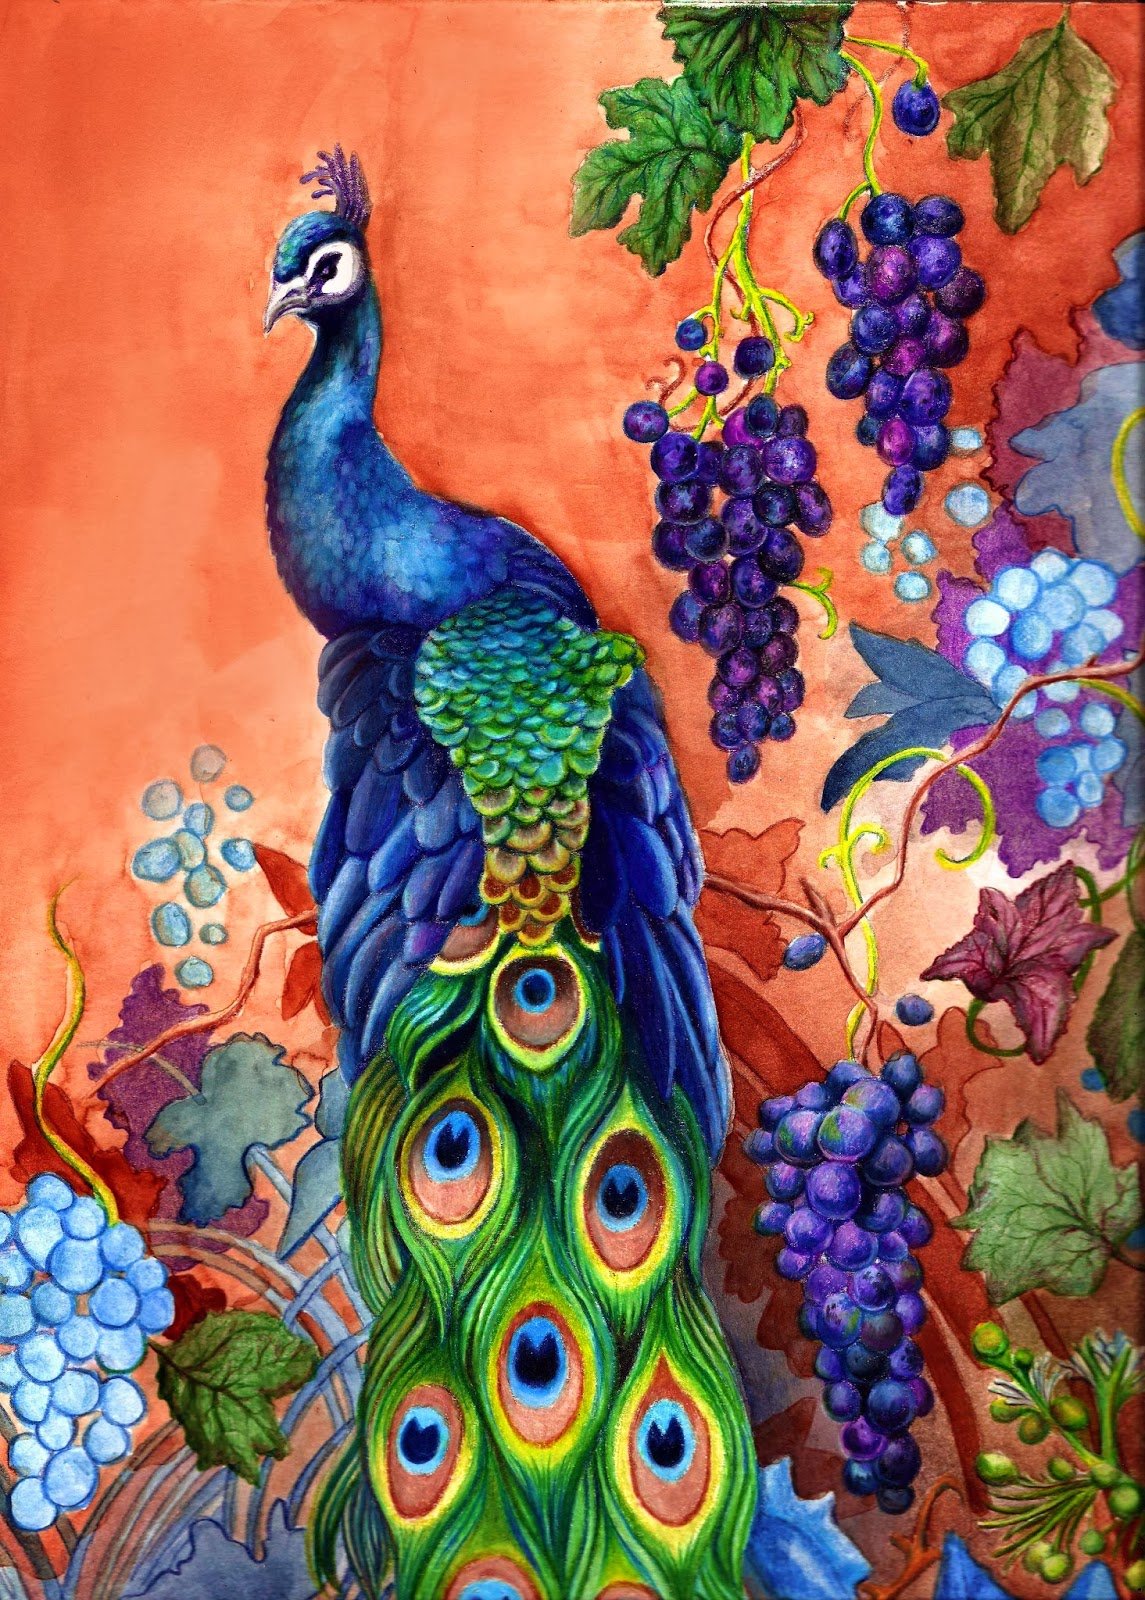 peacock bird artwork with grapes